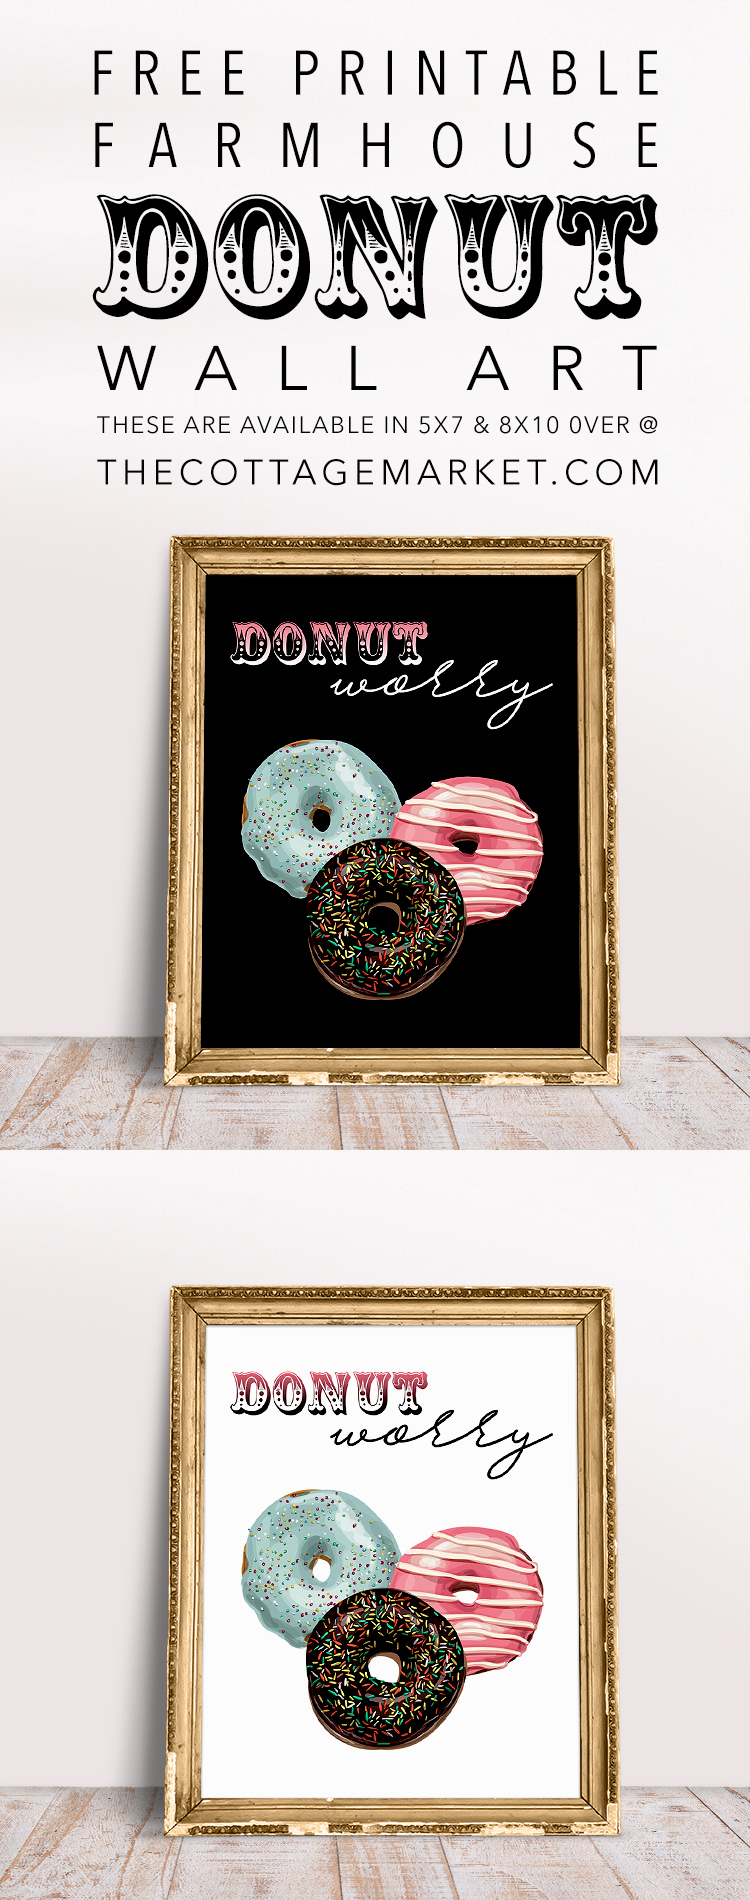 http://thecottagemarket.com/wp-content/uploads/2017/05/tcm-donutworry-TOWER-1.jpg